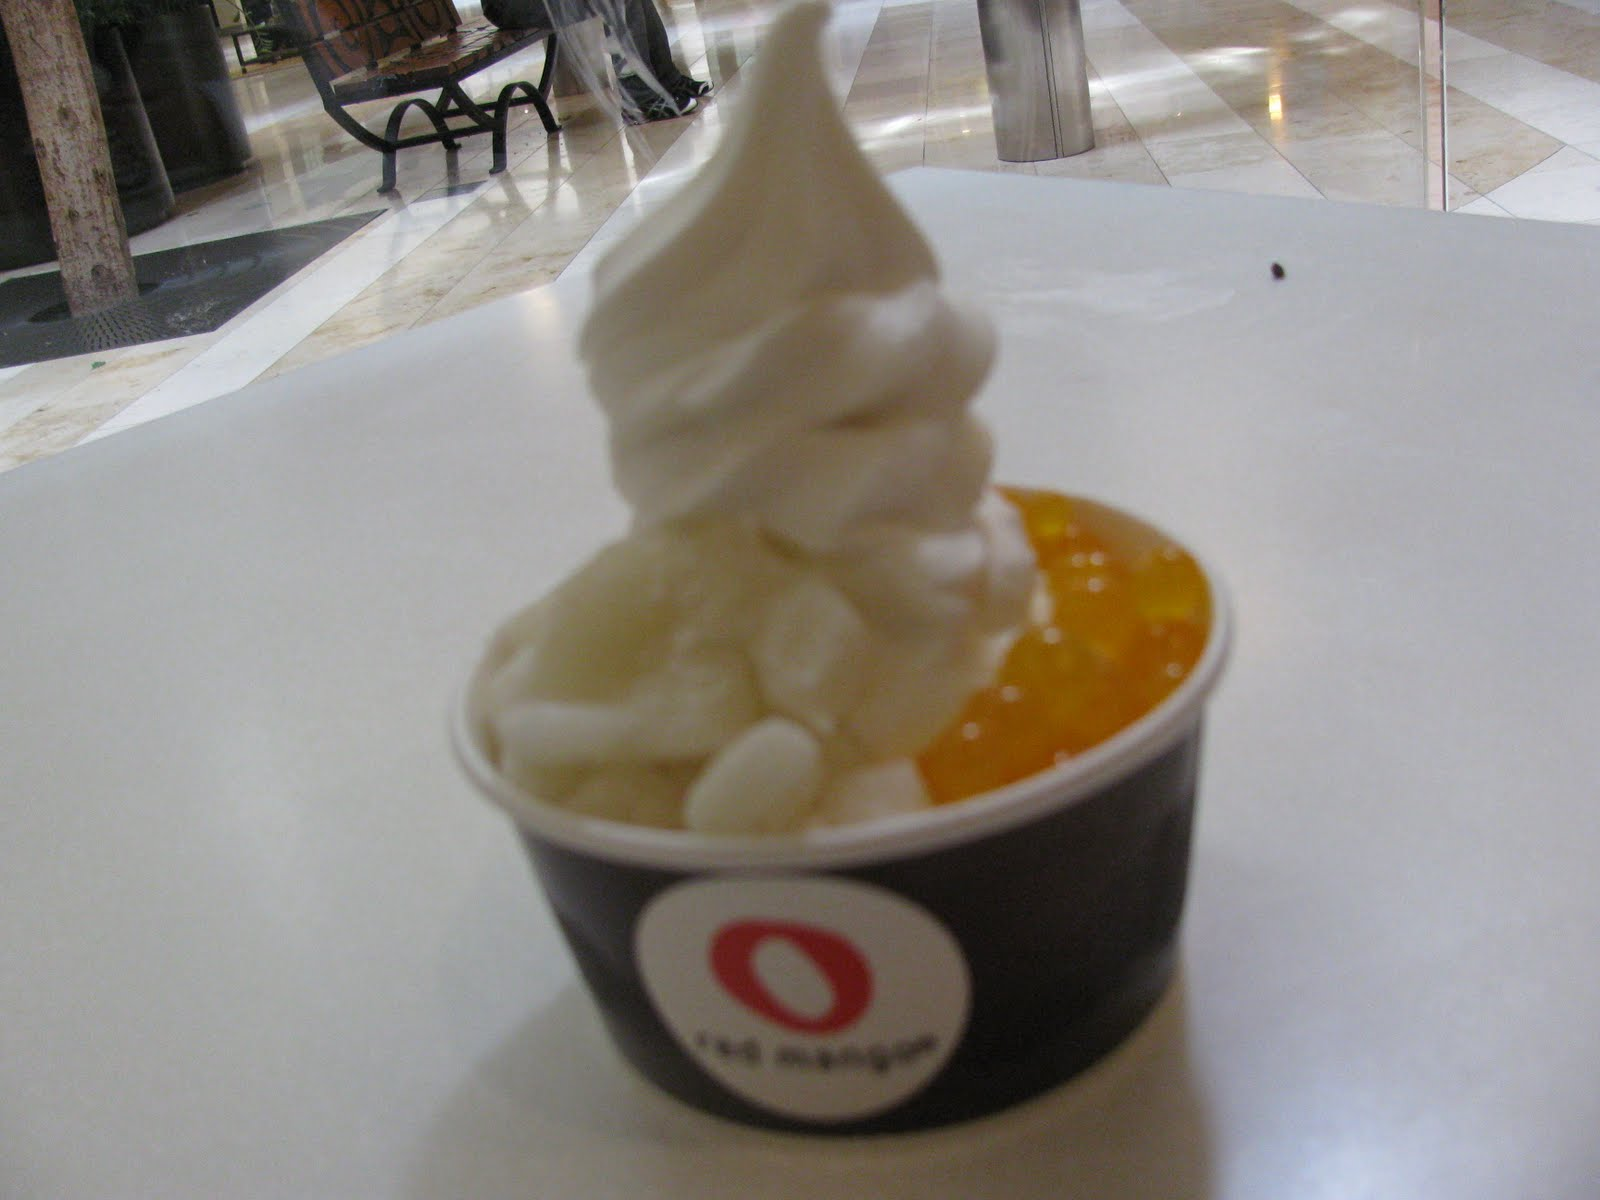 I Tasted A Plain Soft Serve Yogurt With Chocolate Chips And Fresh Mangos  And A Vanilla Soft Serve Yogurt With Mochi Bits And Funny Little Balls That  Popped